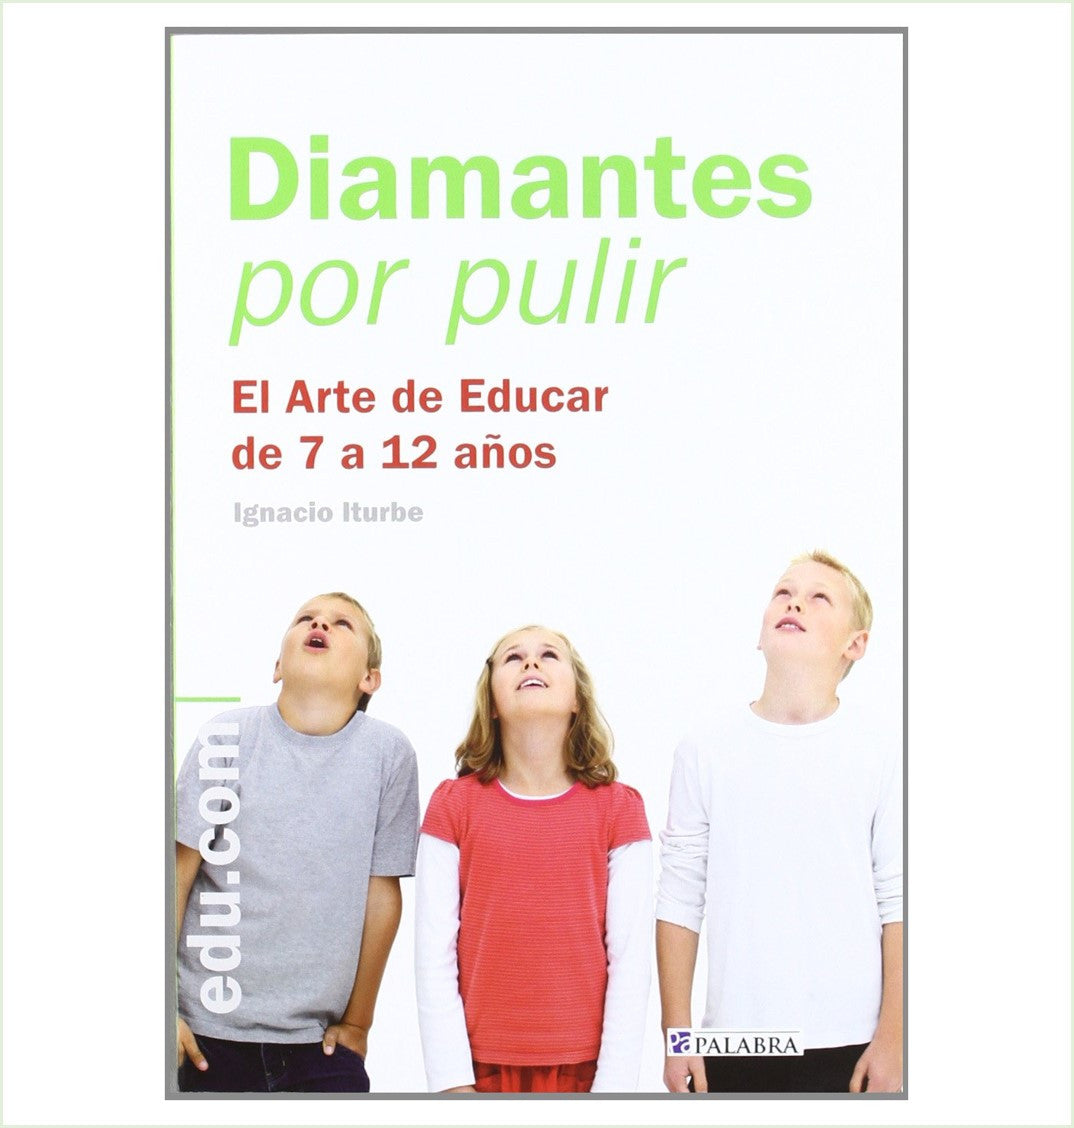 Diamantes por pulir